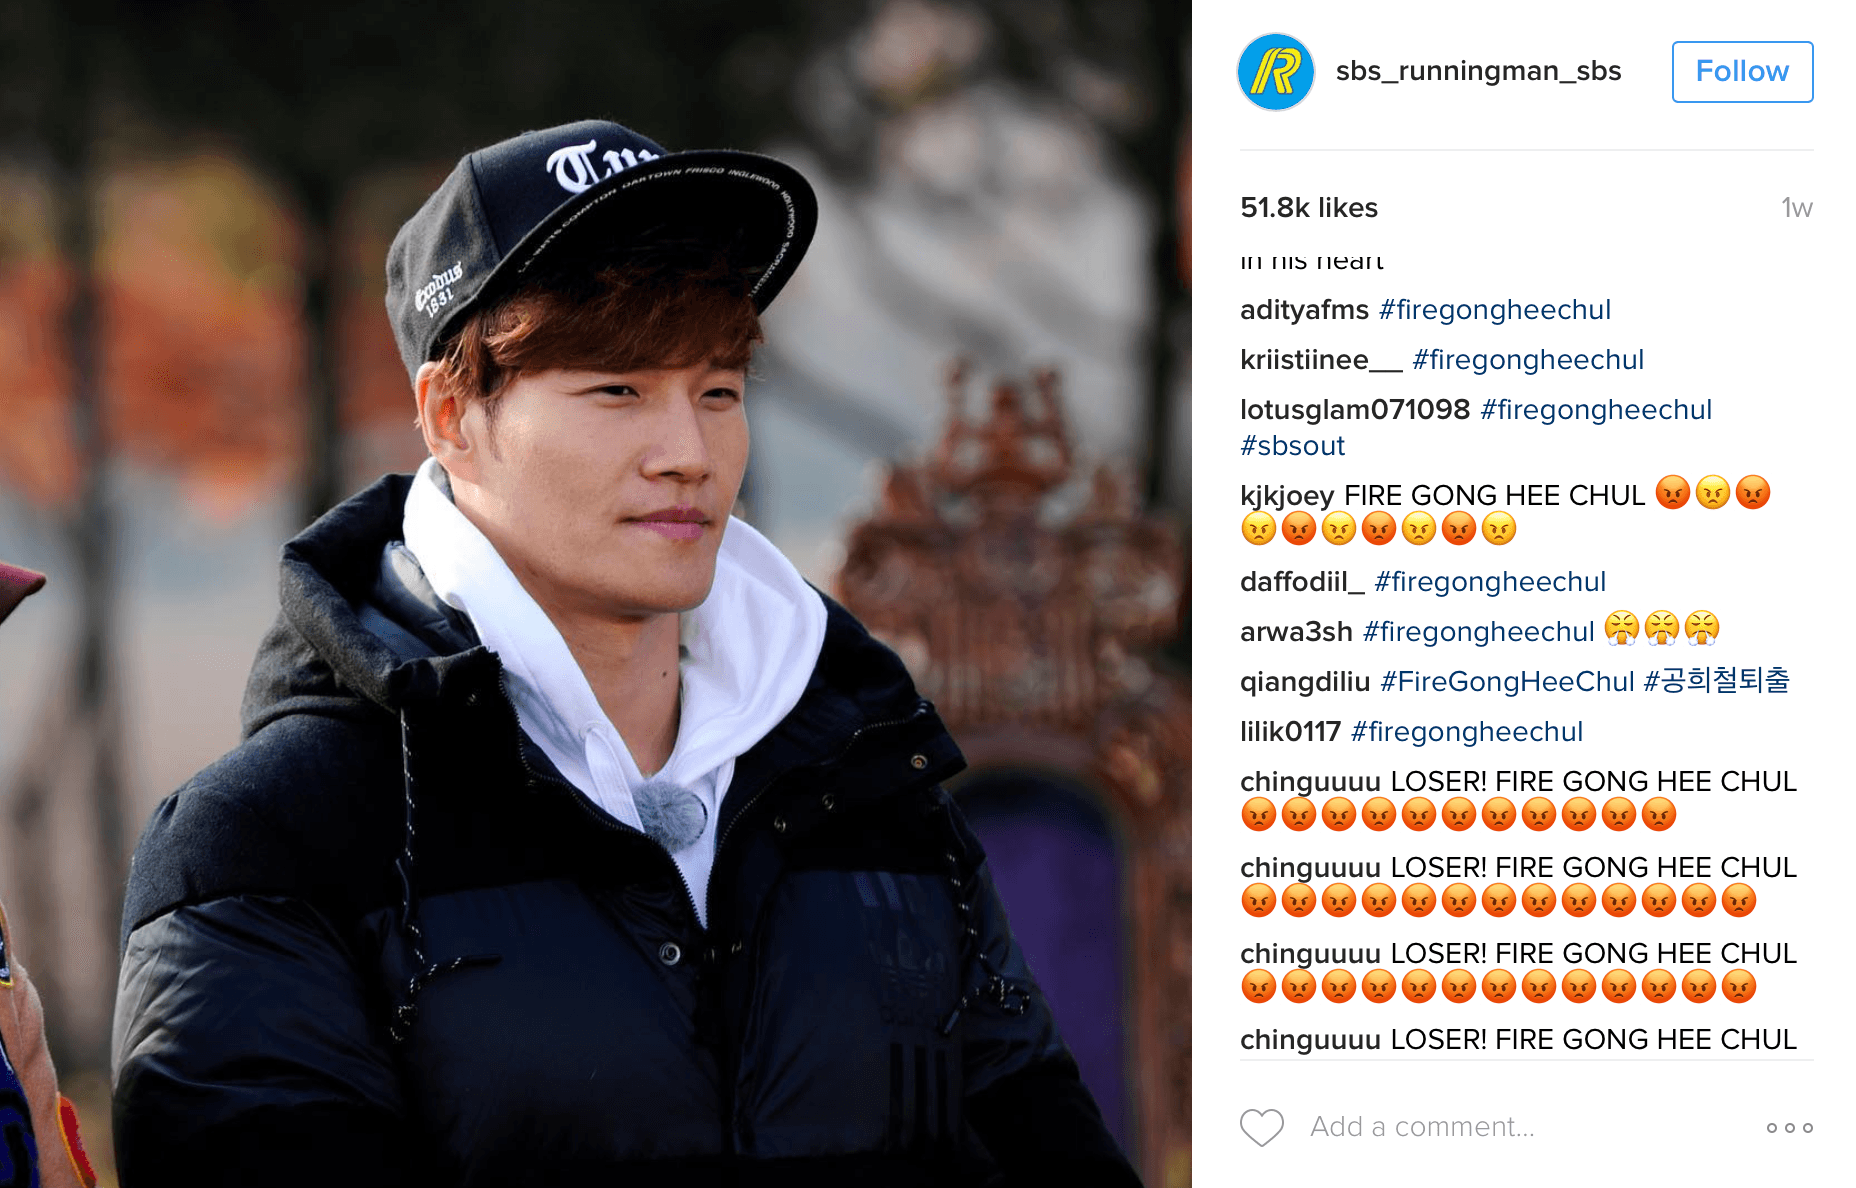 Fans are repeatedly posting on all photos by Running Man demanding answers.